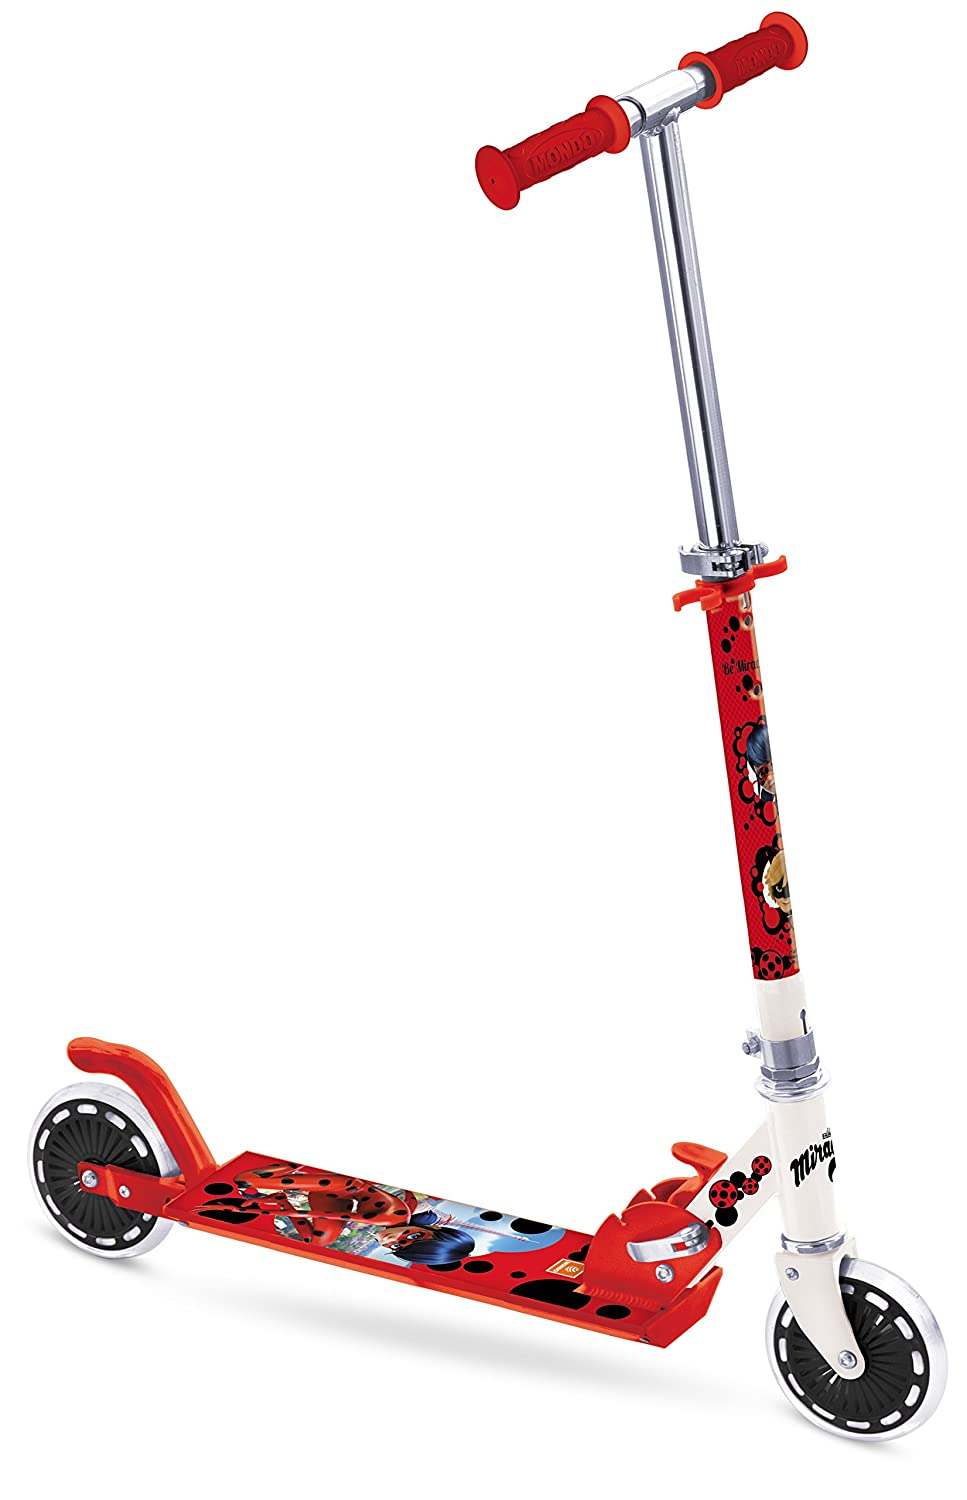 Amazon.com: Miraculous Ladybug Aluminium Scooter: Toys & Games